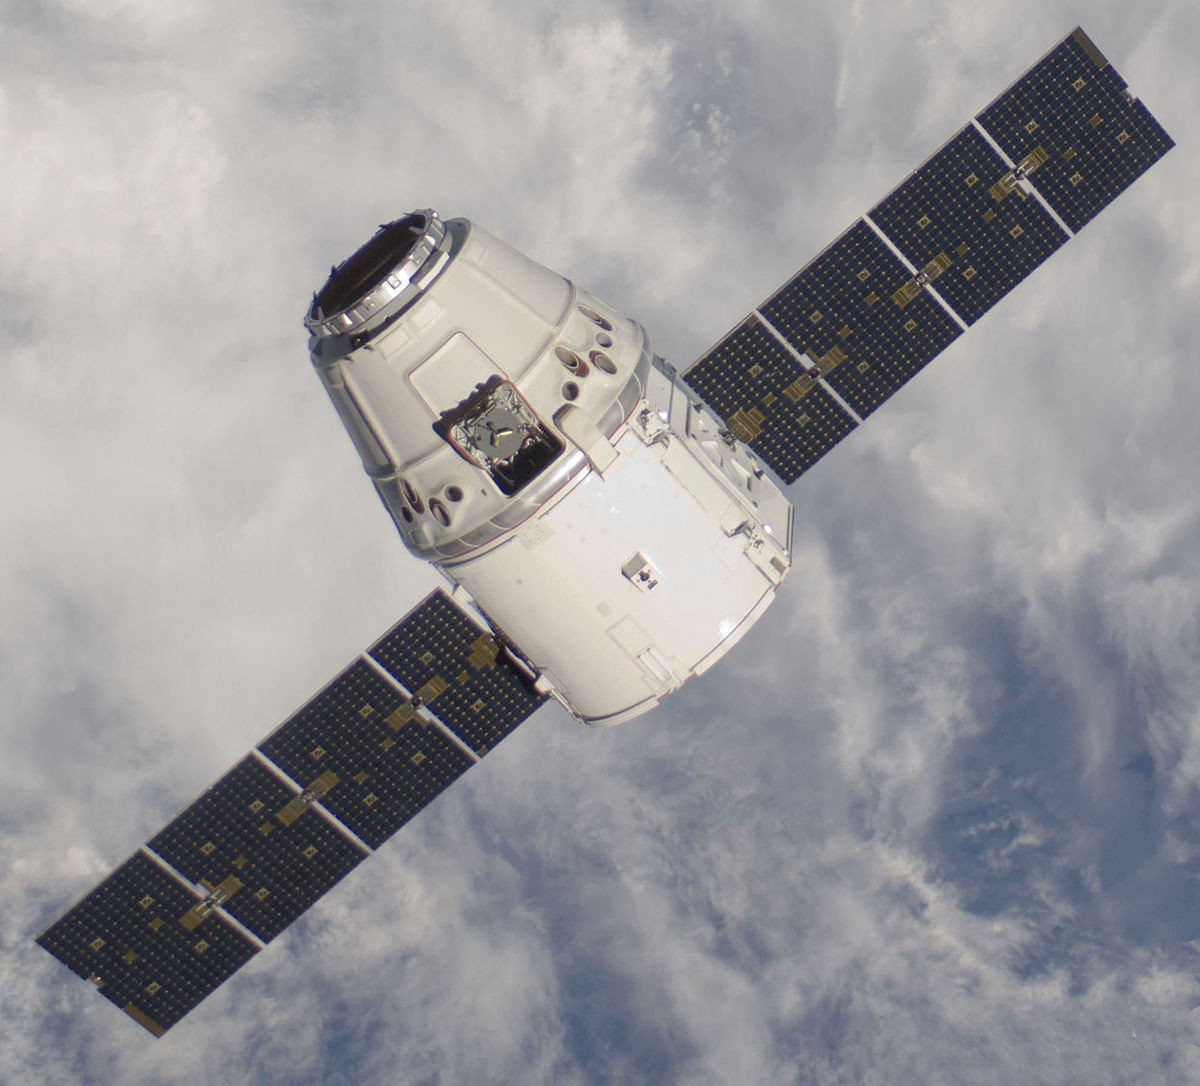 SpaceX Dragon - Wikipedia